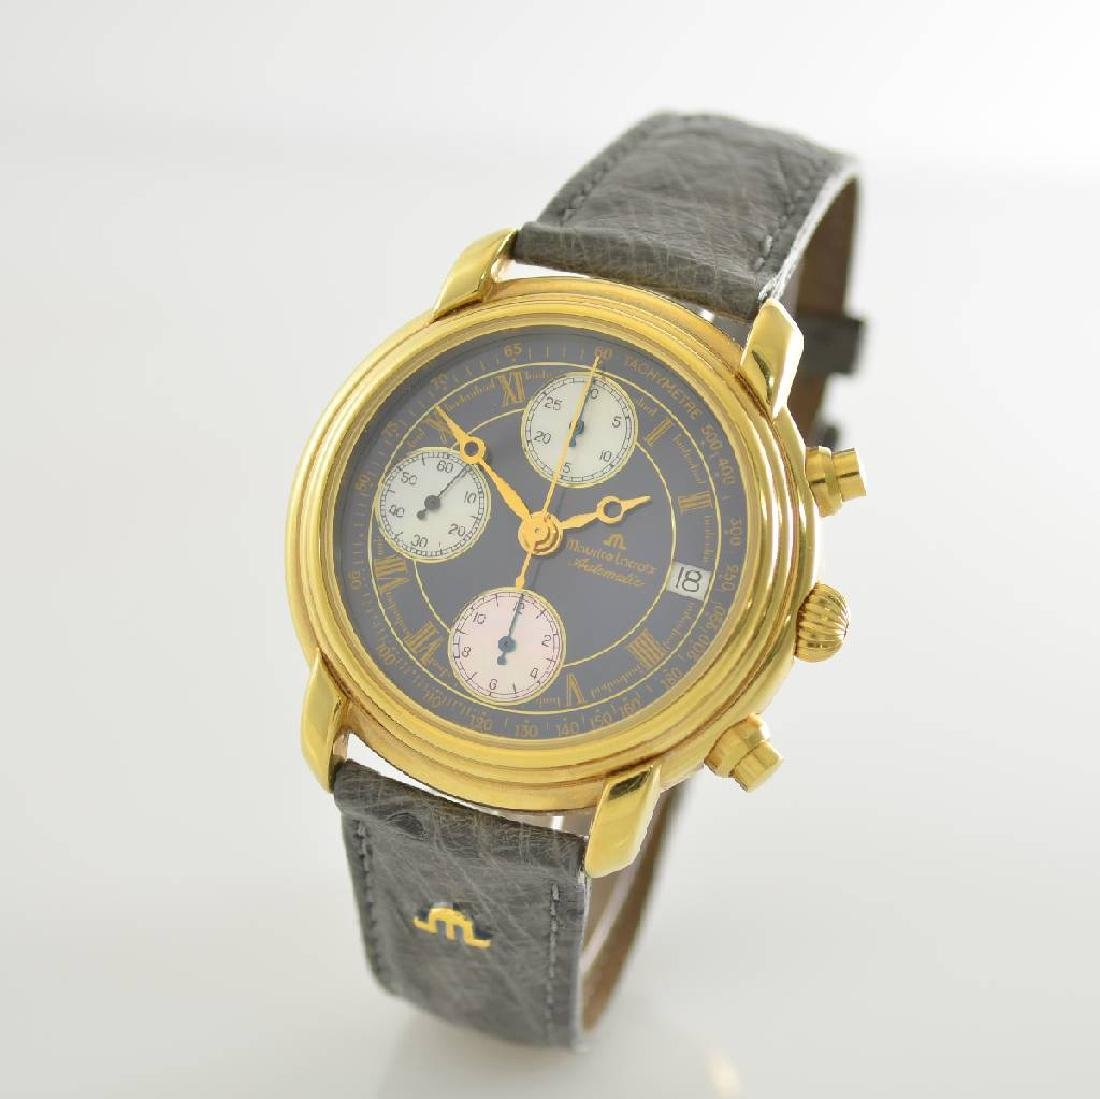 MAURICE LACROIX gents wristwatch with chronograph - 3